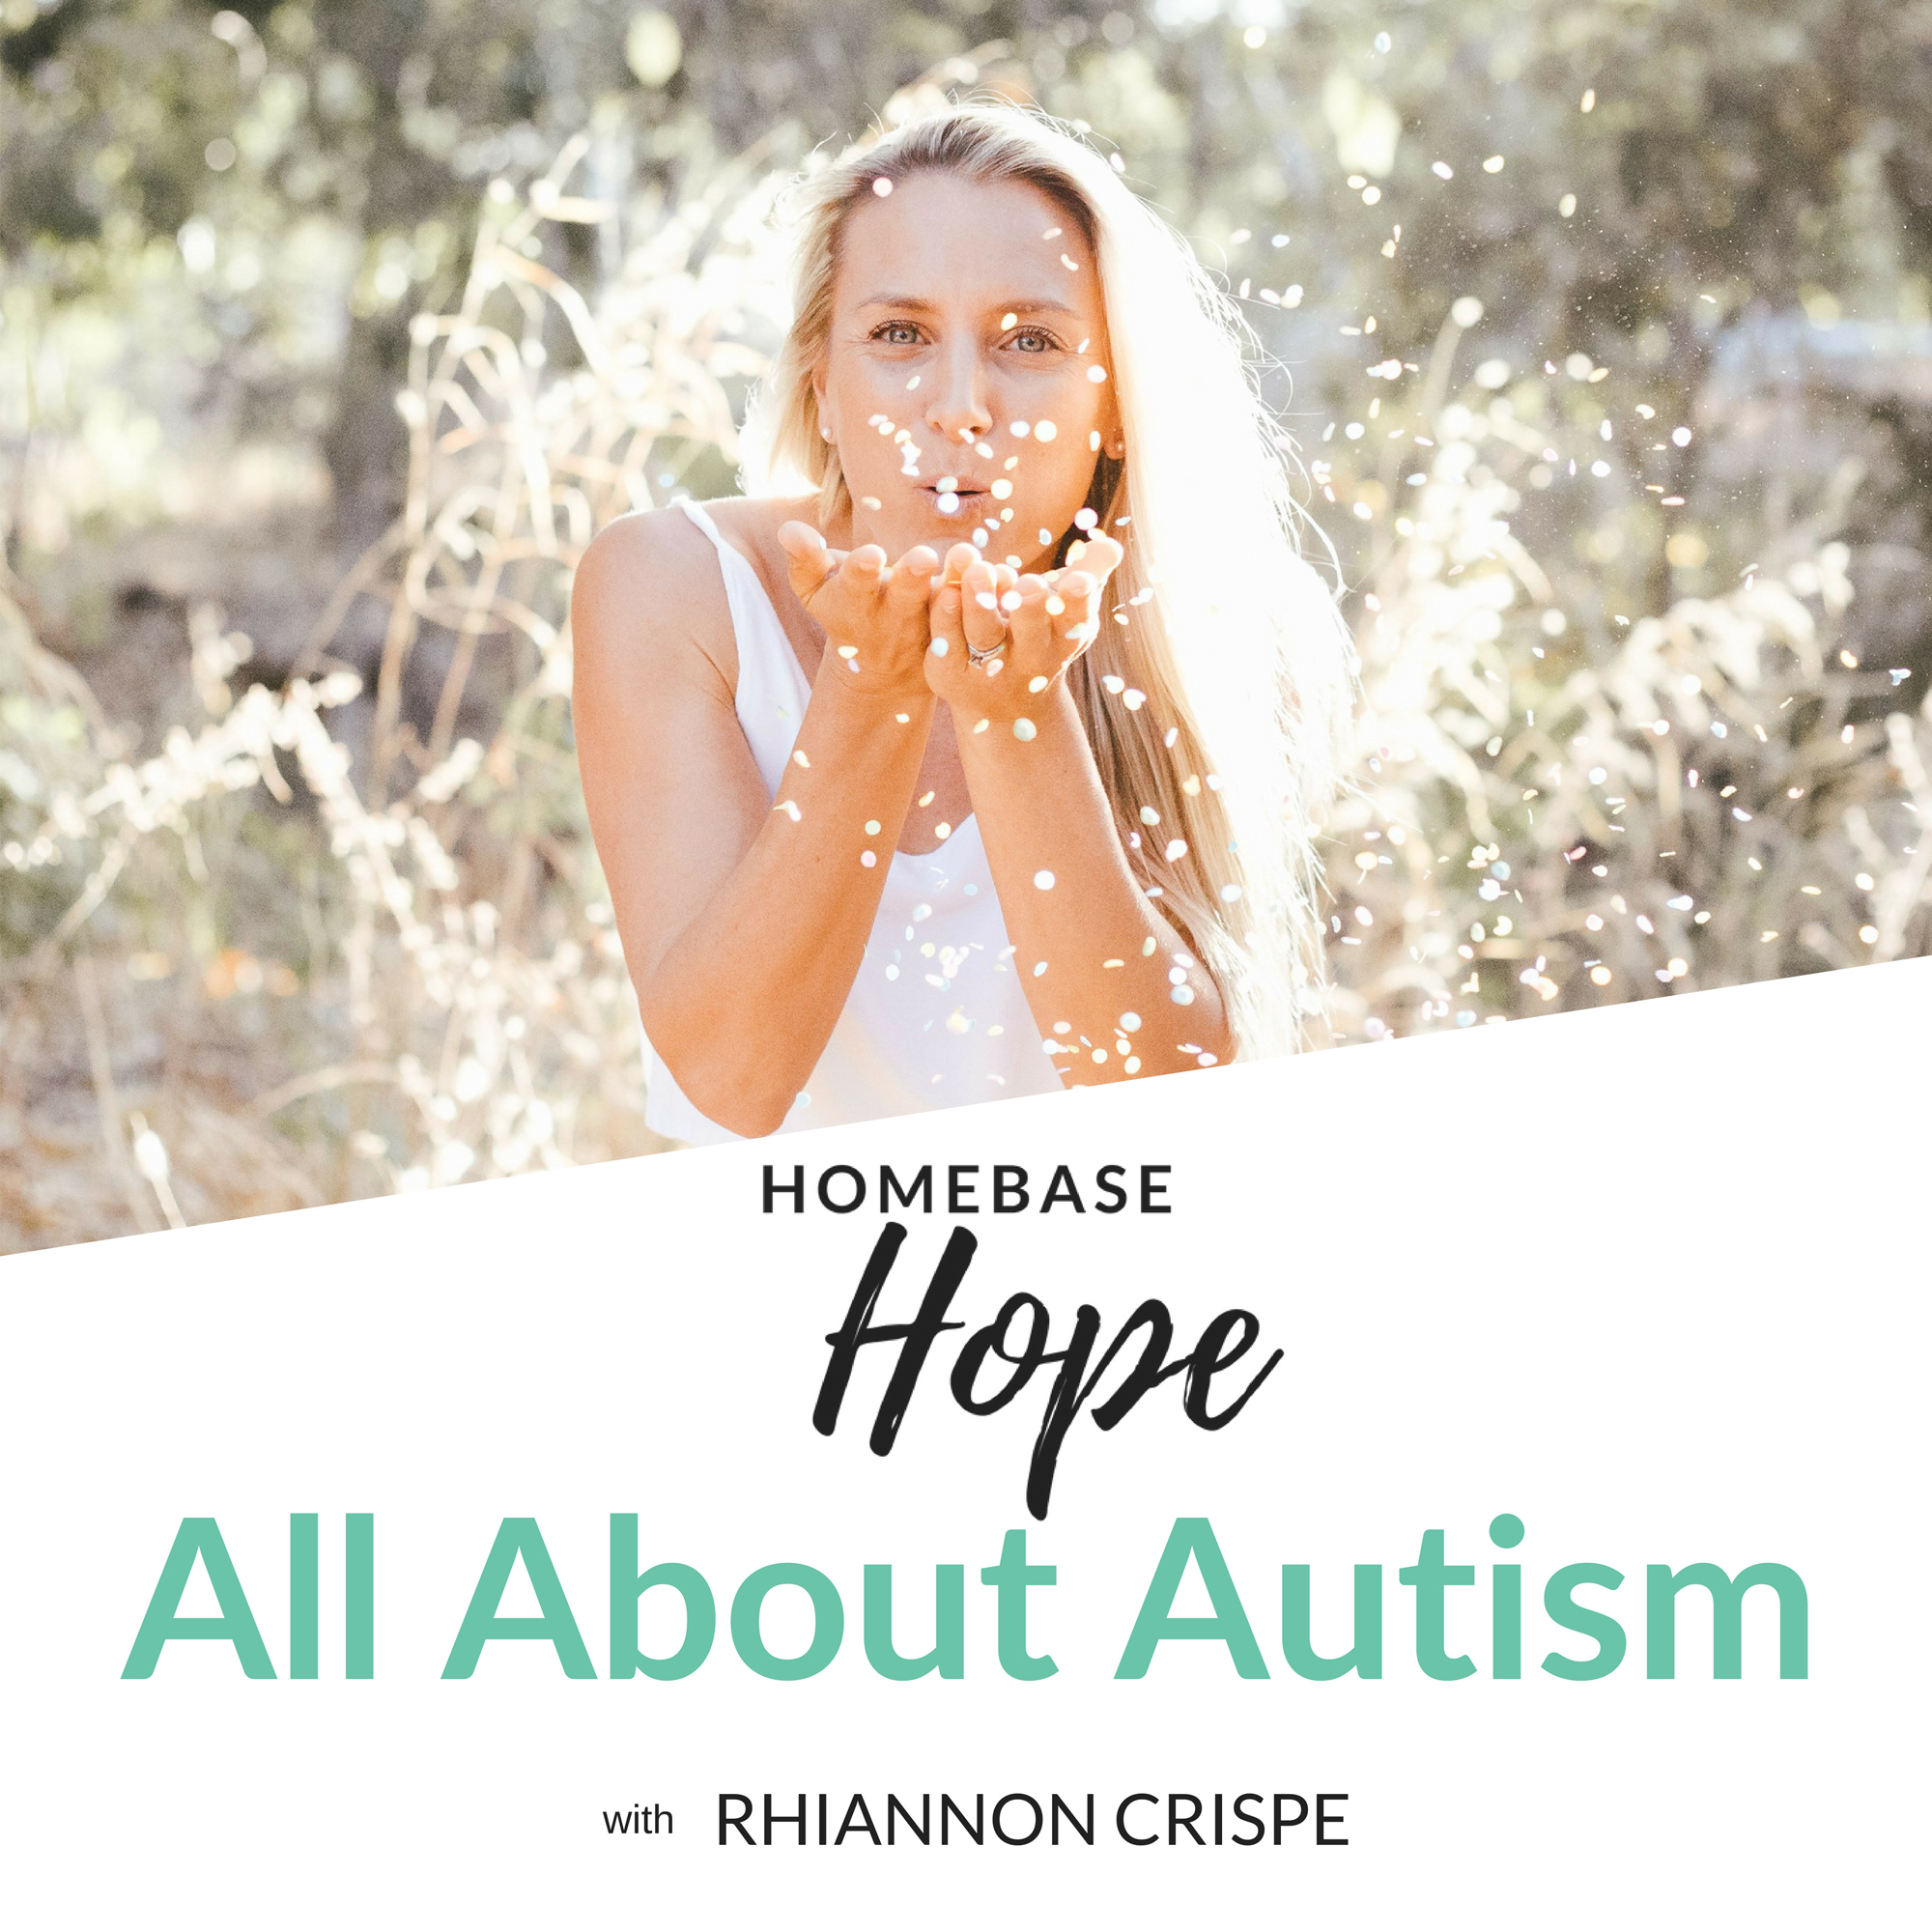 Homebase Hope: All About Autism